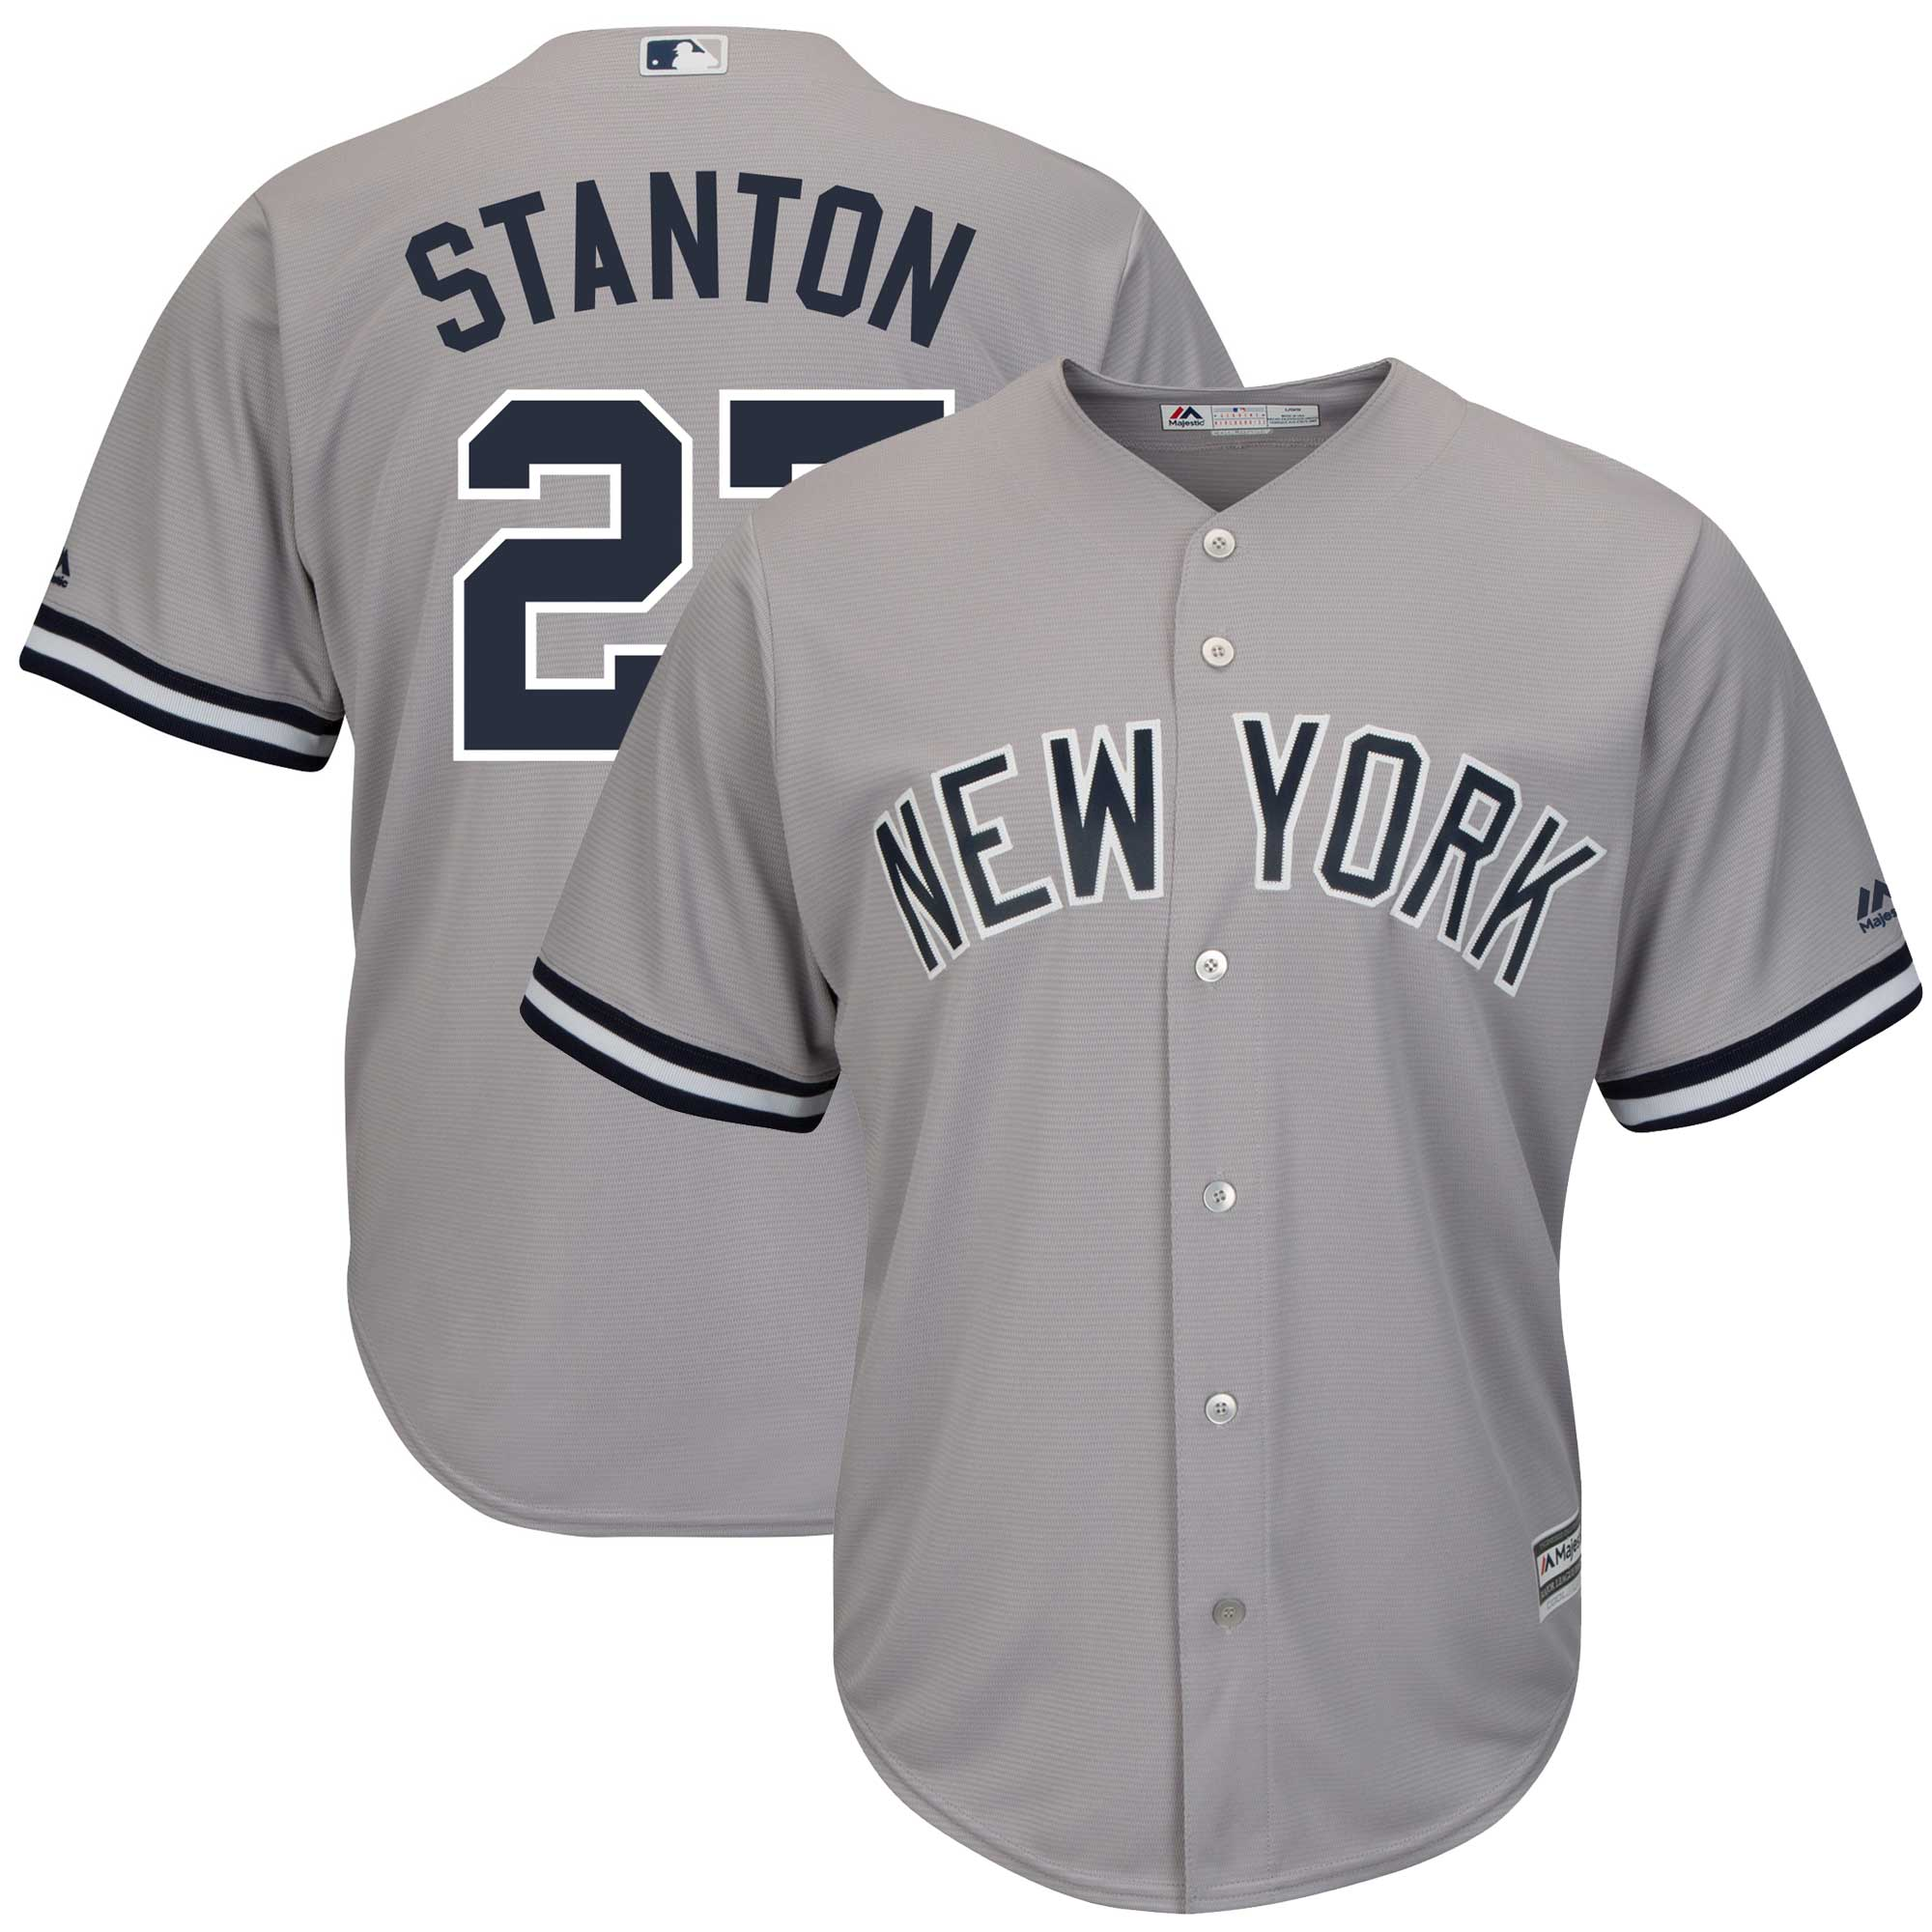 Giancarlo Stanton New York Yankees Majestic Big & Tall Alternate Cool Base Replica Player Jersey - Gray